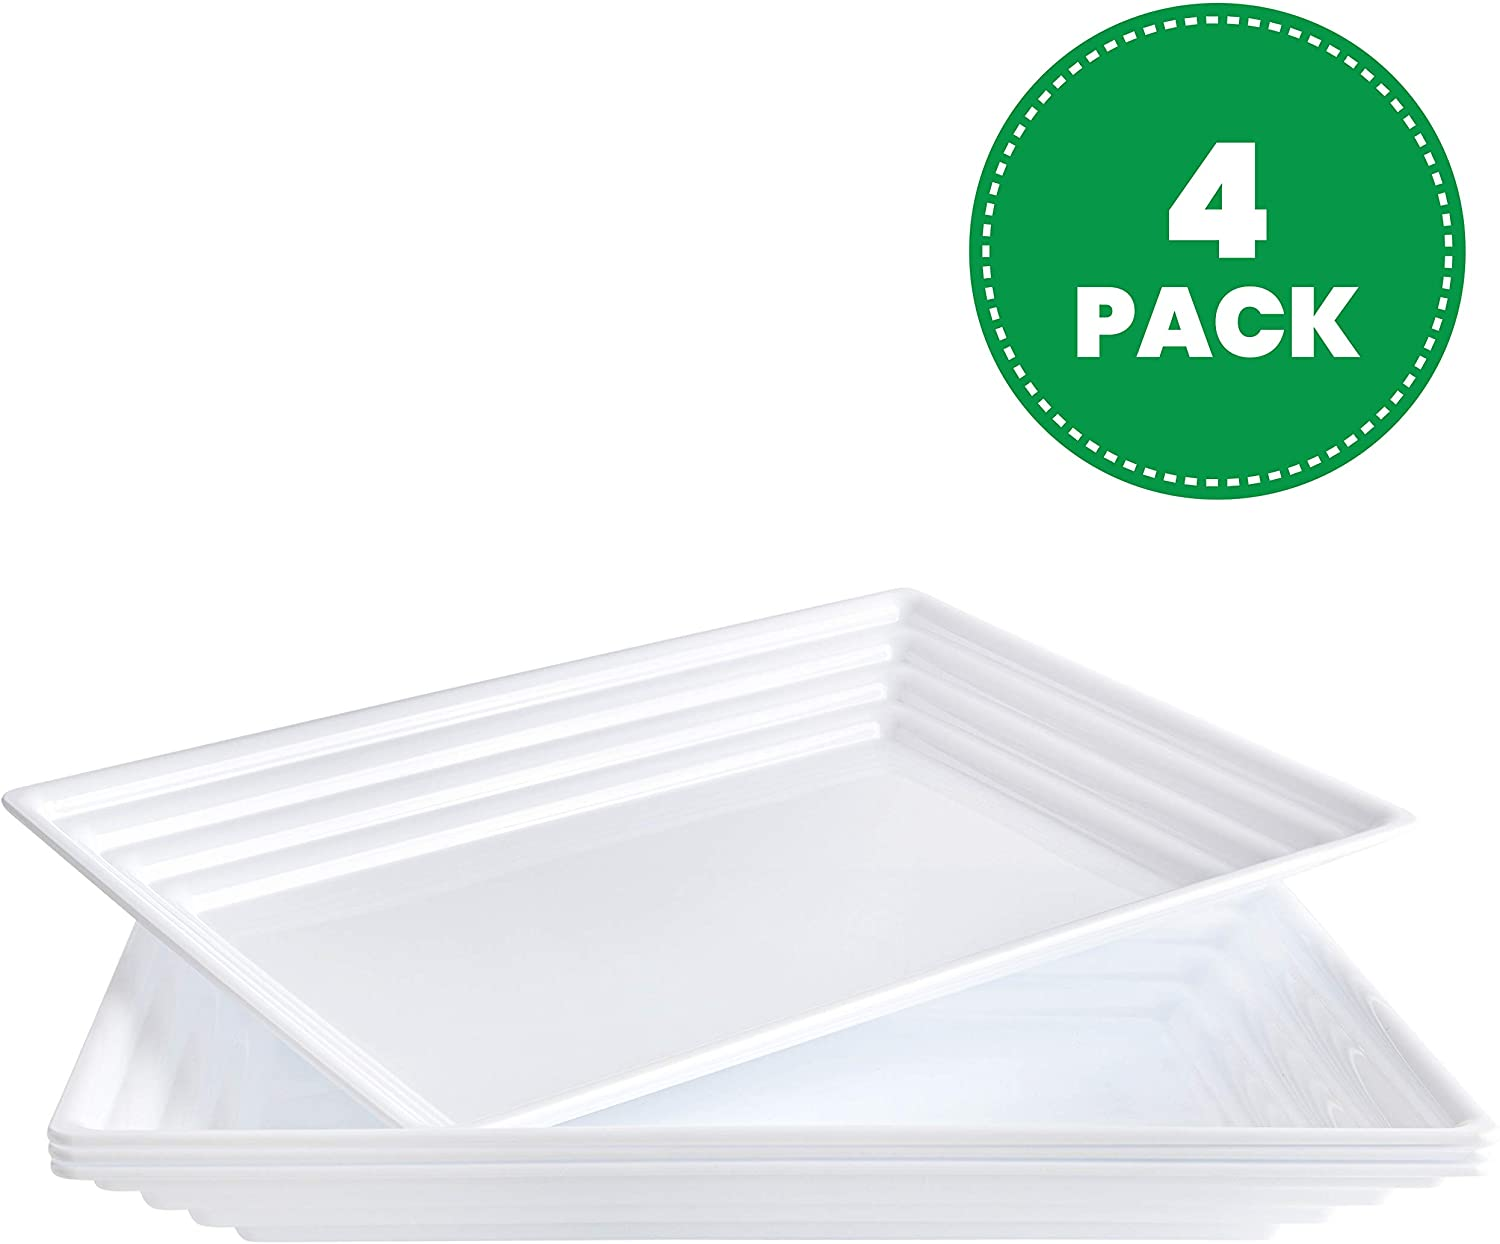 Plasticpro Plastic Serving Trays - Serving Platters Rectangle 9X13 Disposable Party Dish White, Elegant Leveled Border, Pack of 4